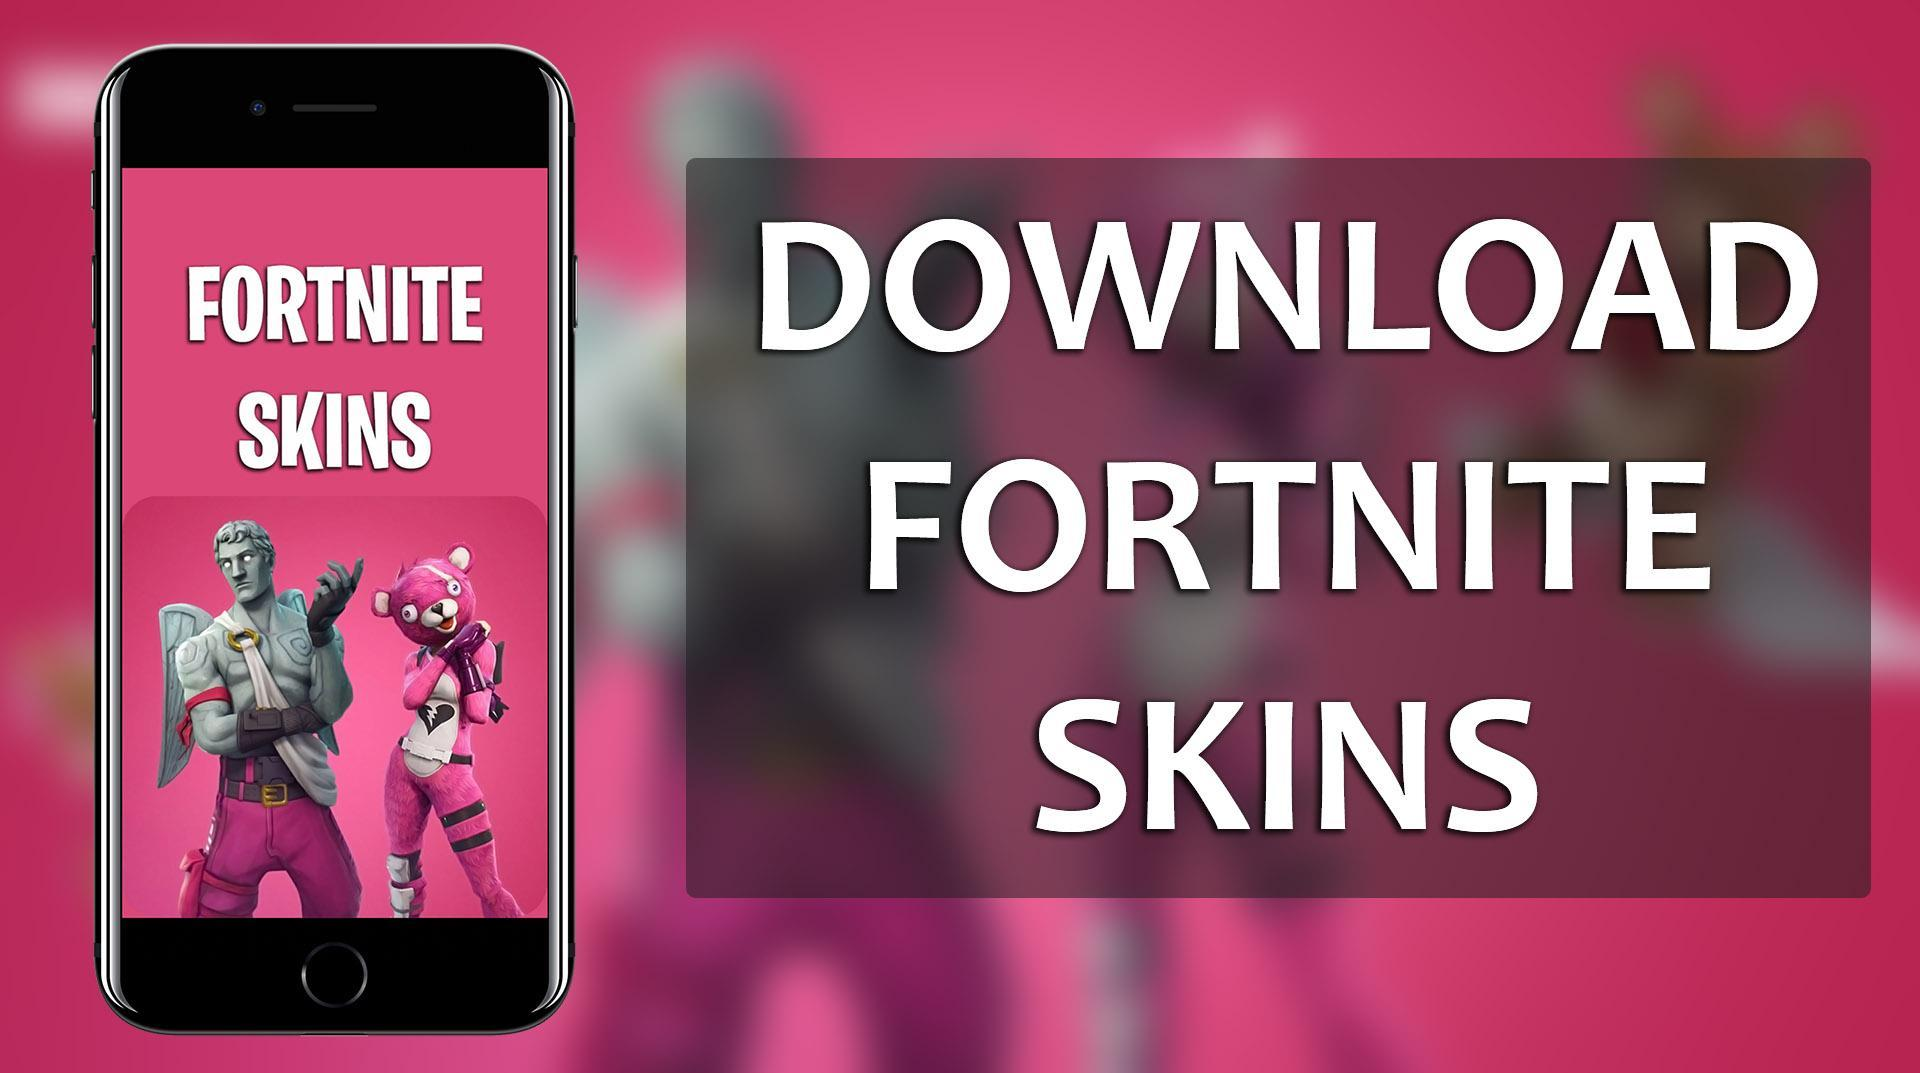 Fortnite Skins for Android - APK Download